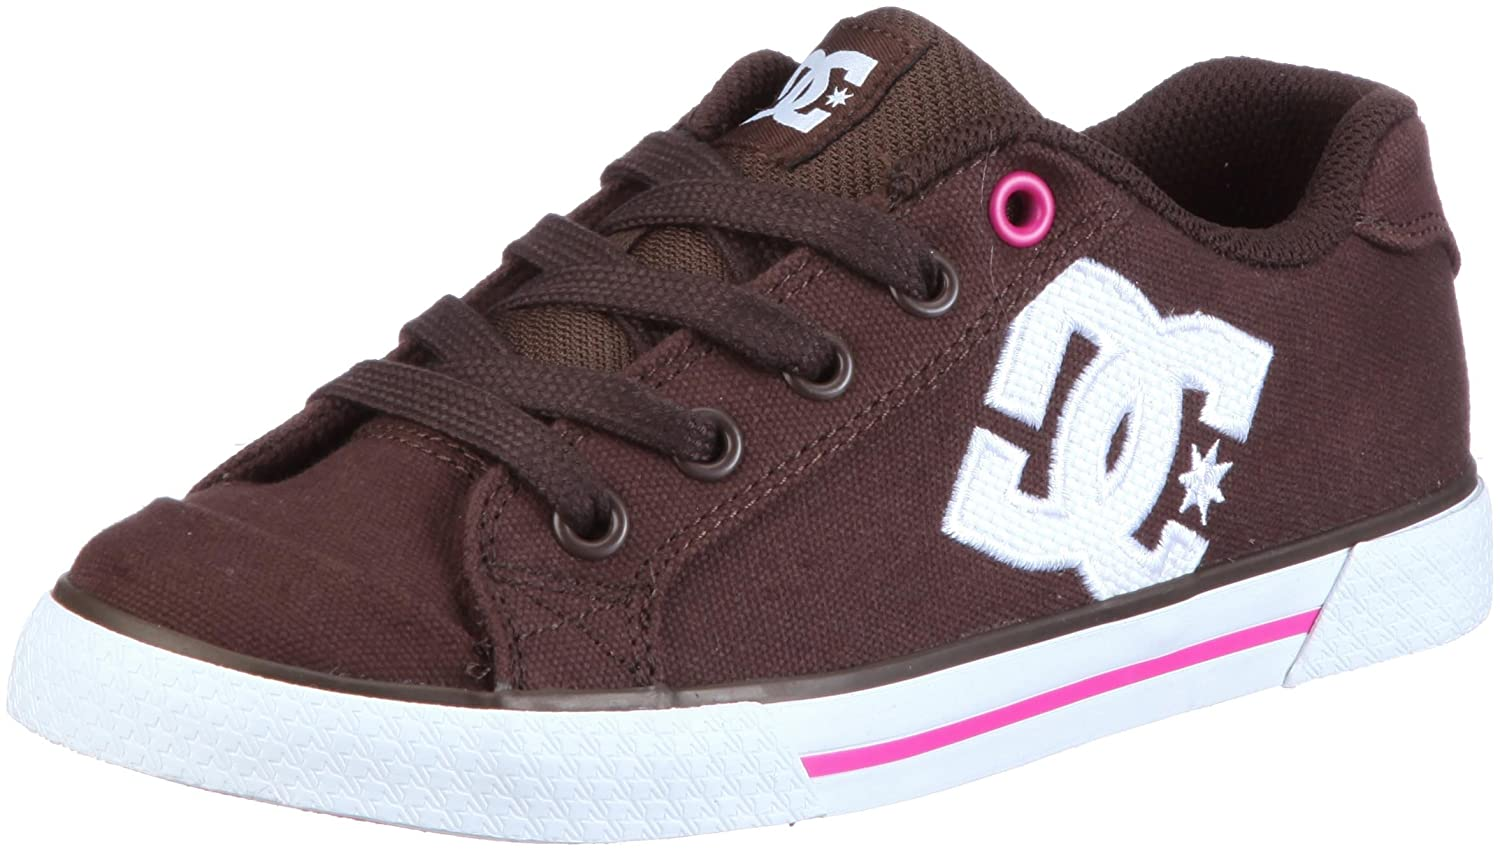 DC Women's Chelsea Tx Action Sports Shoe B004LZ4ROK 8.5 B(M) US|Dark Chocolate